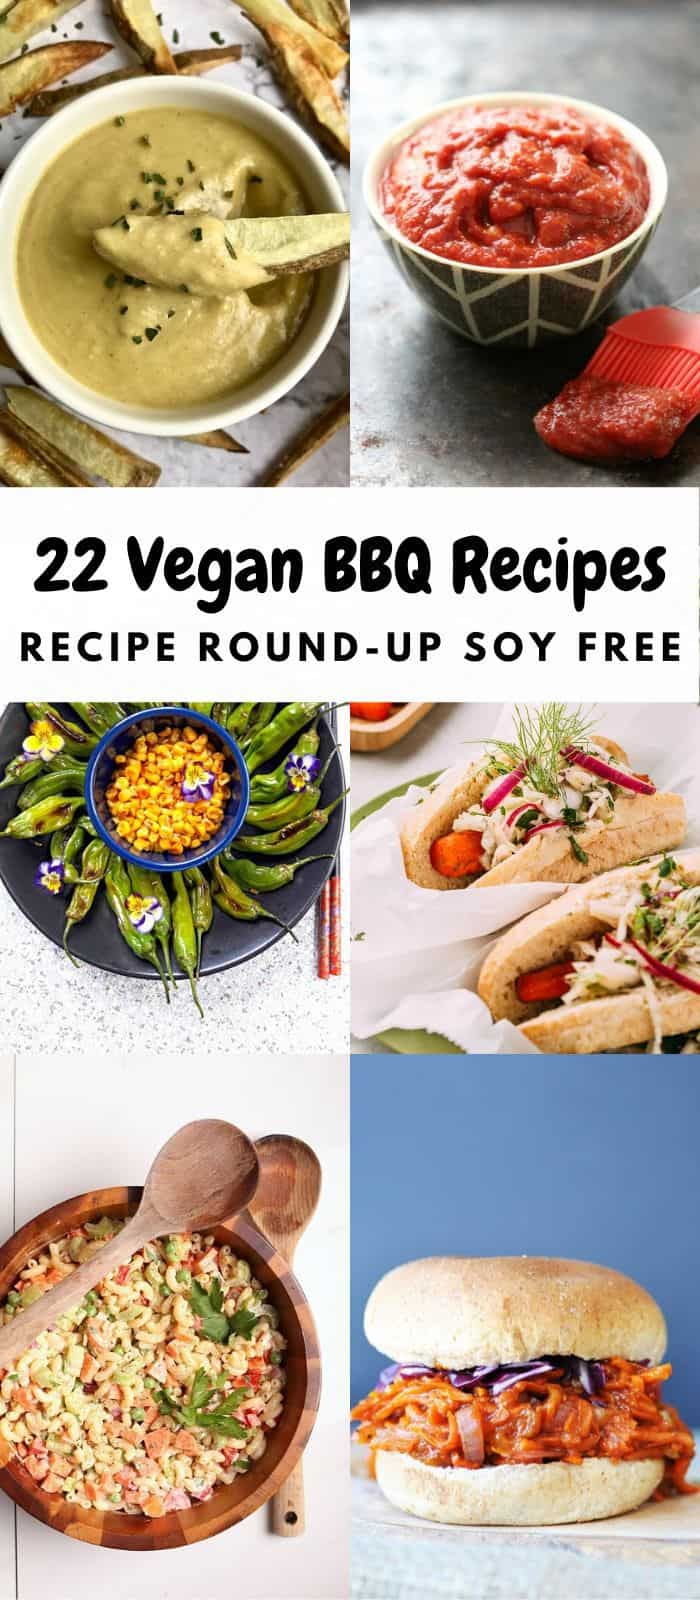 pictures of recipes from vegan bbq round up collage